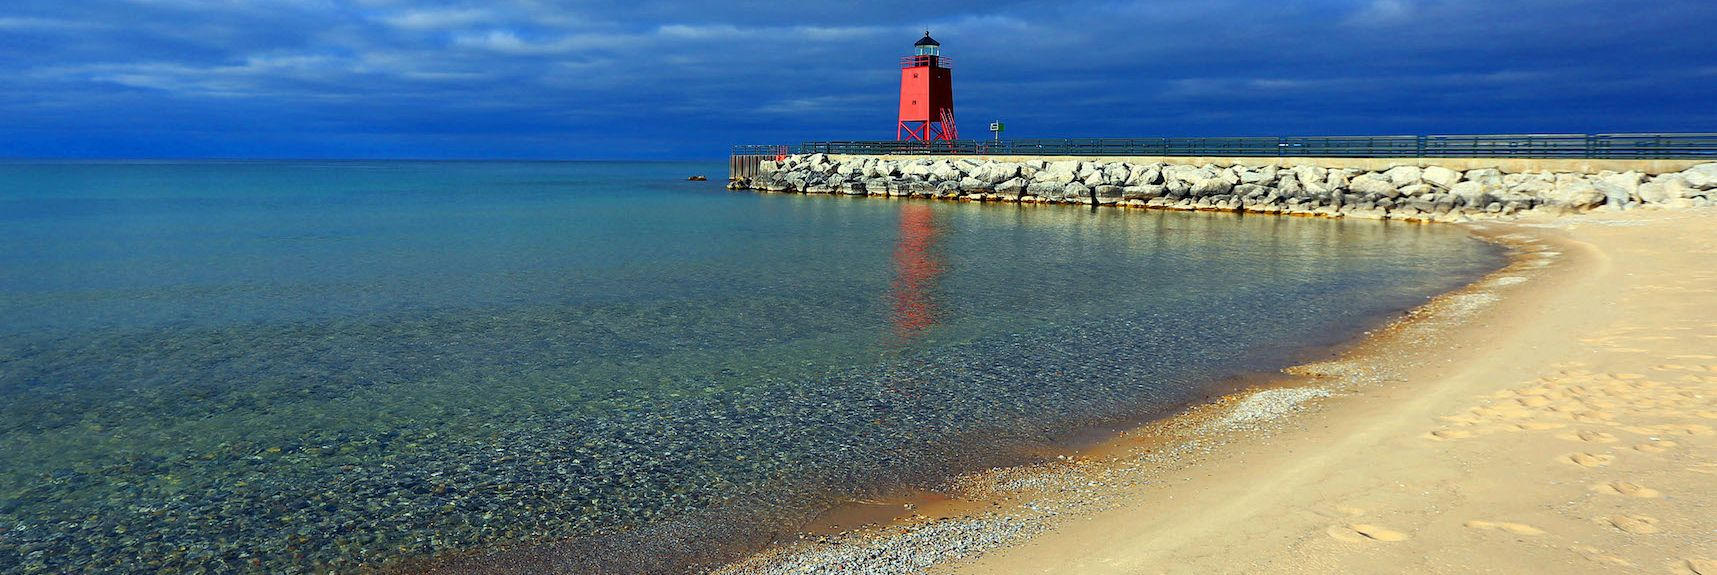 Petoskey, Míchigan, Estados Unidos